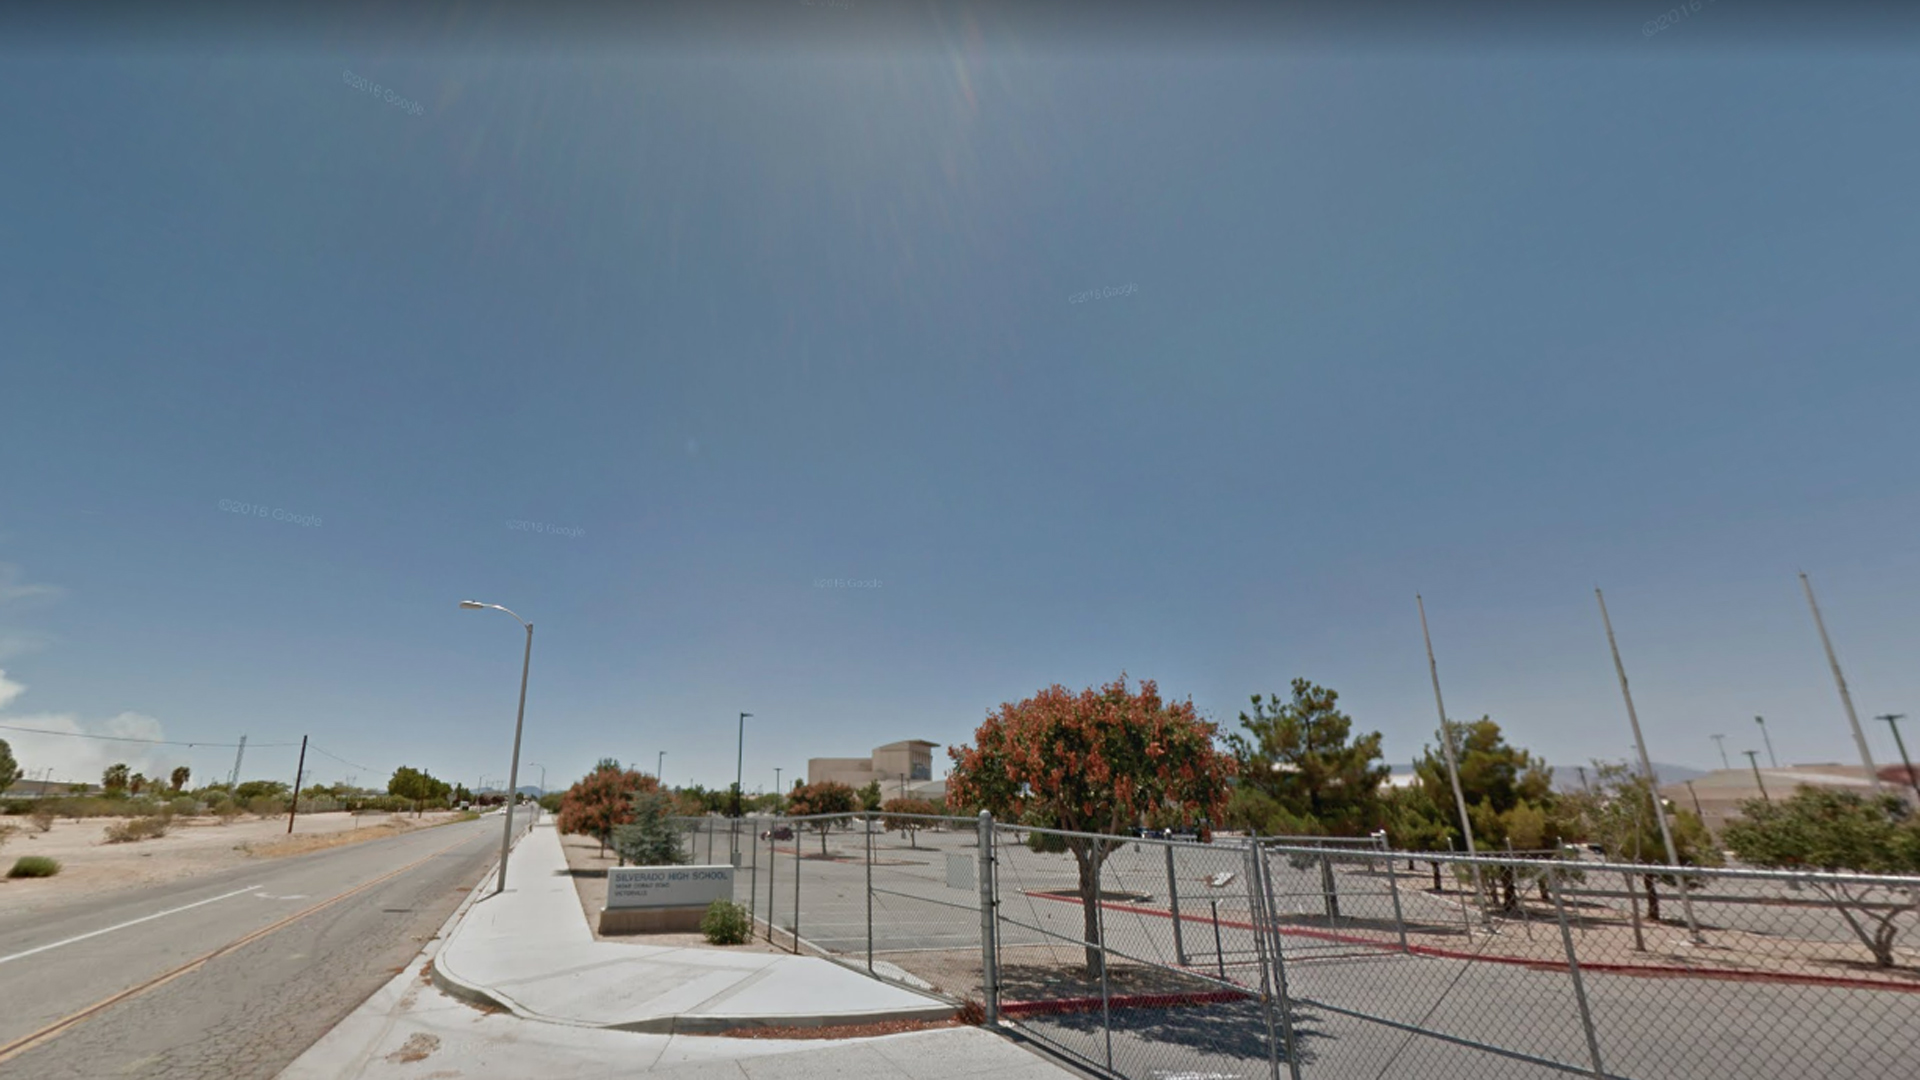 Silverado High School in Victorville is seen in this undated image from Google Maps.